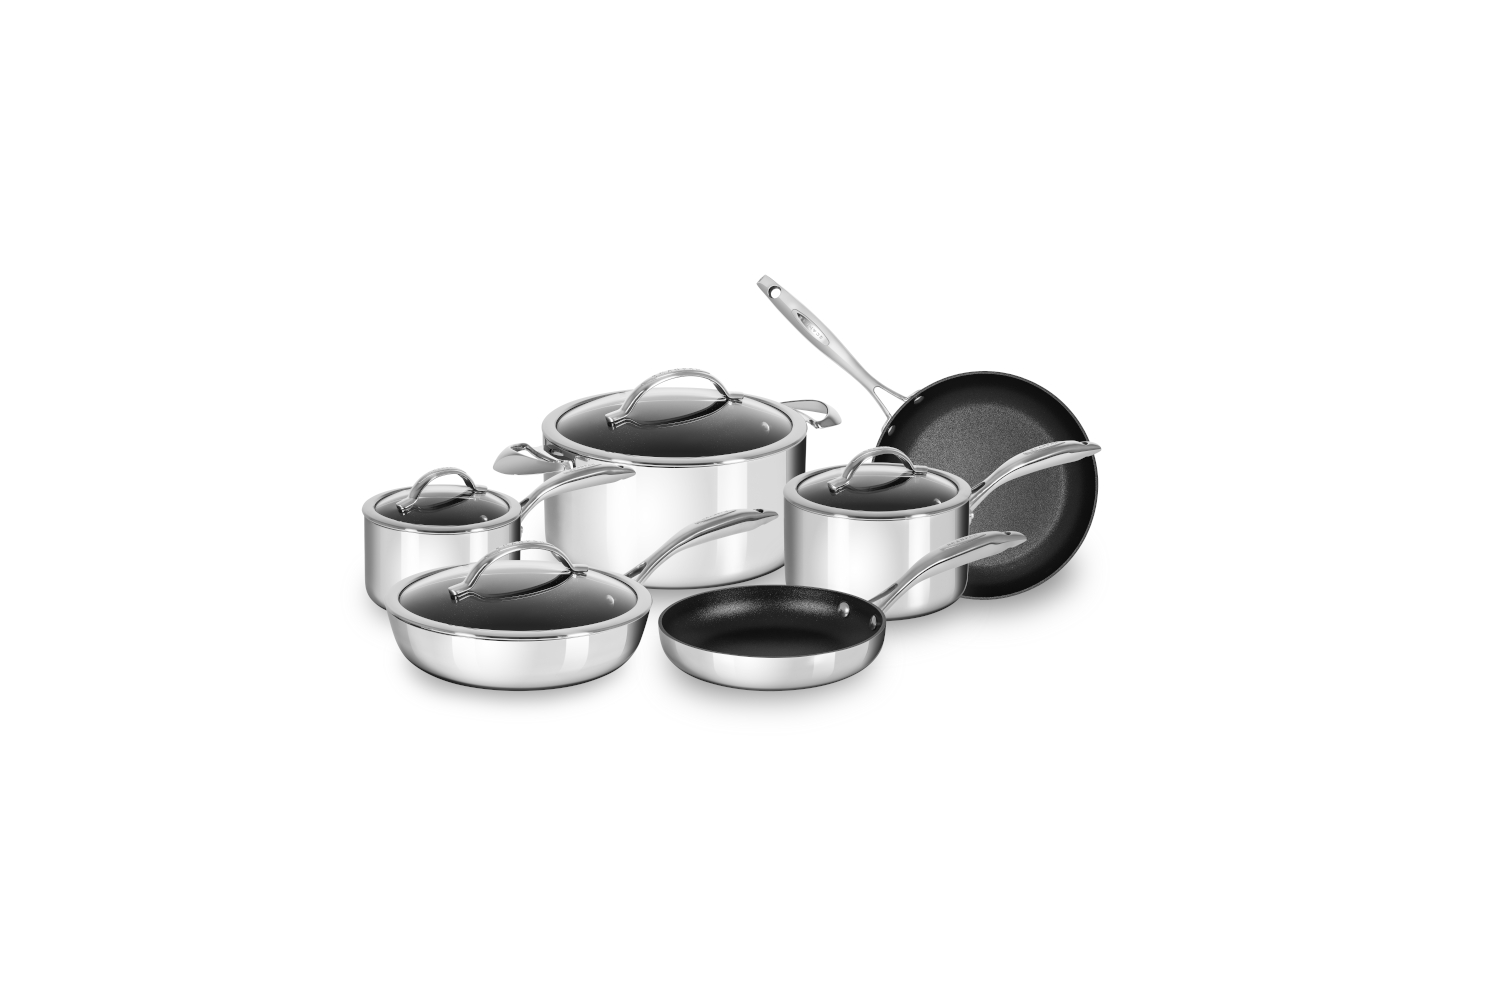 Scanpan Haptiq STRATANIUM+ 10 Piece Nonstick Cookware Set